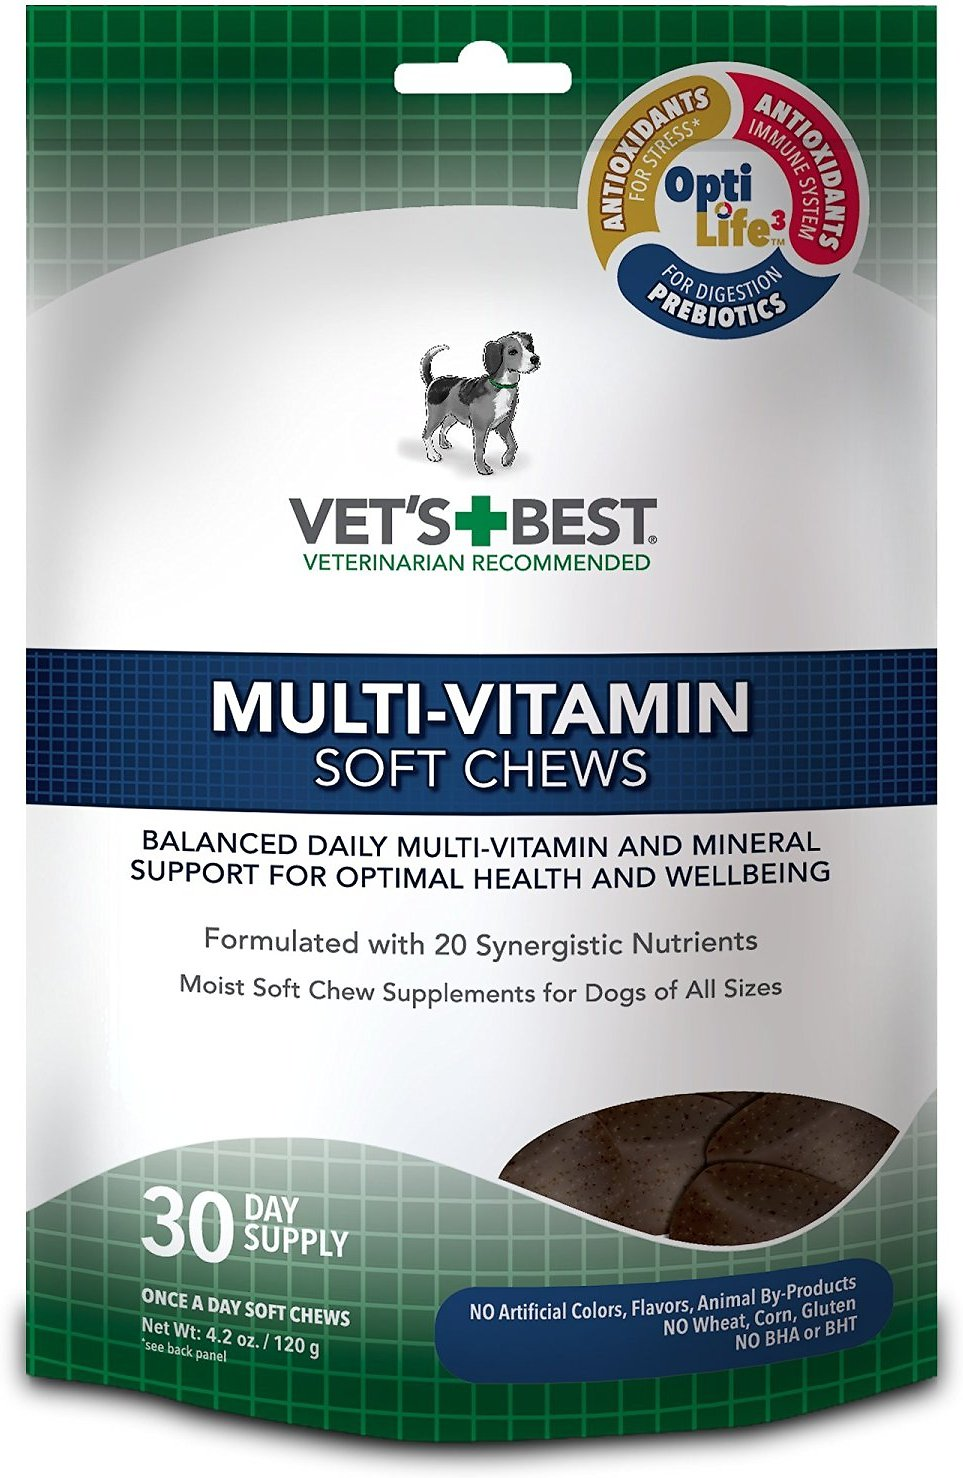 Vet's Best Multi-Vitamin Soft Chews Dog Supplement, 30 count Image